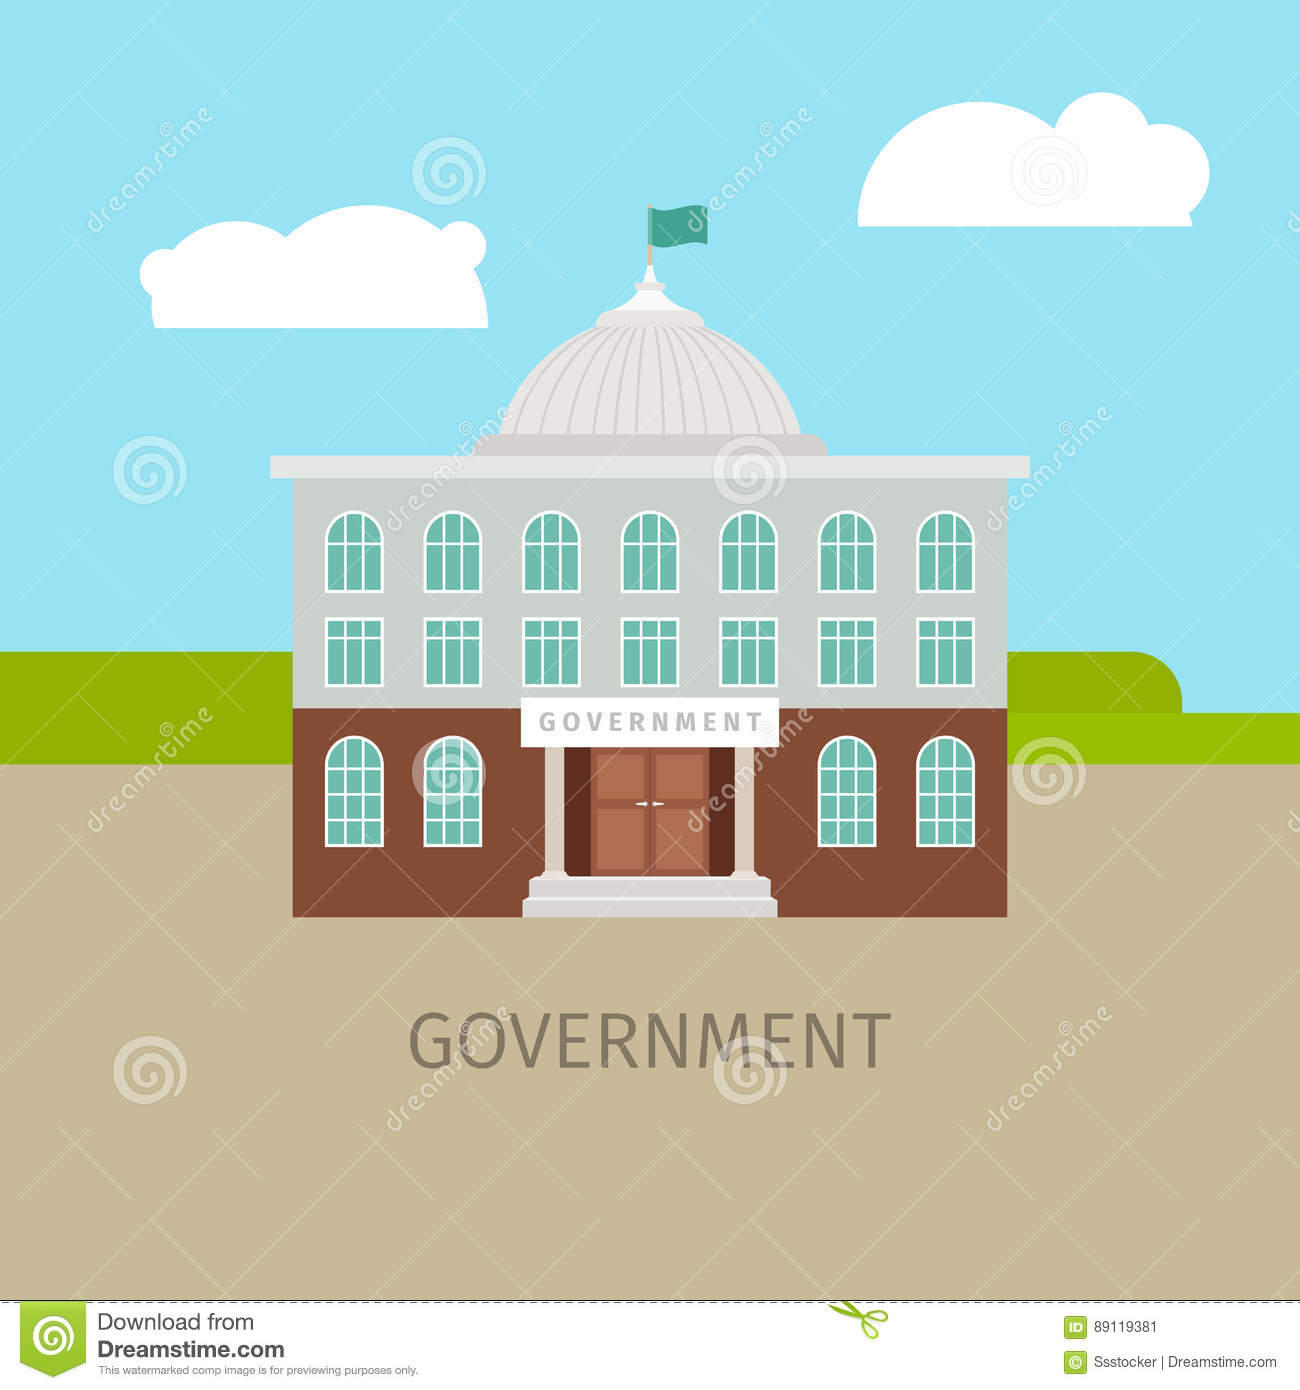 Colored urban government building